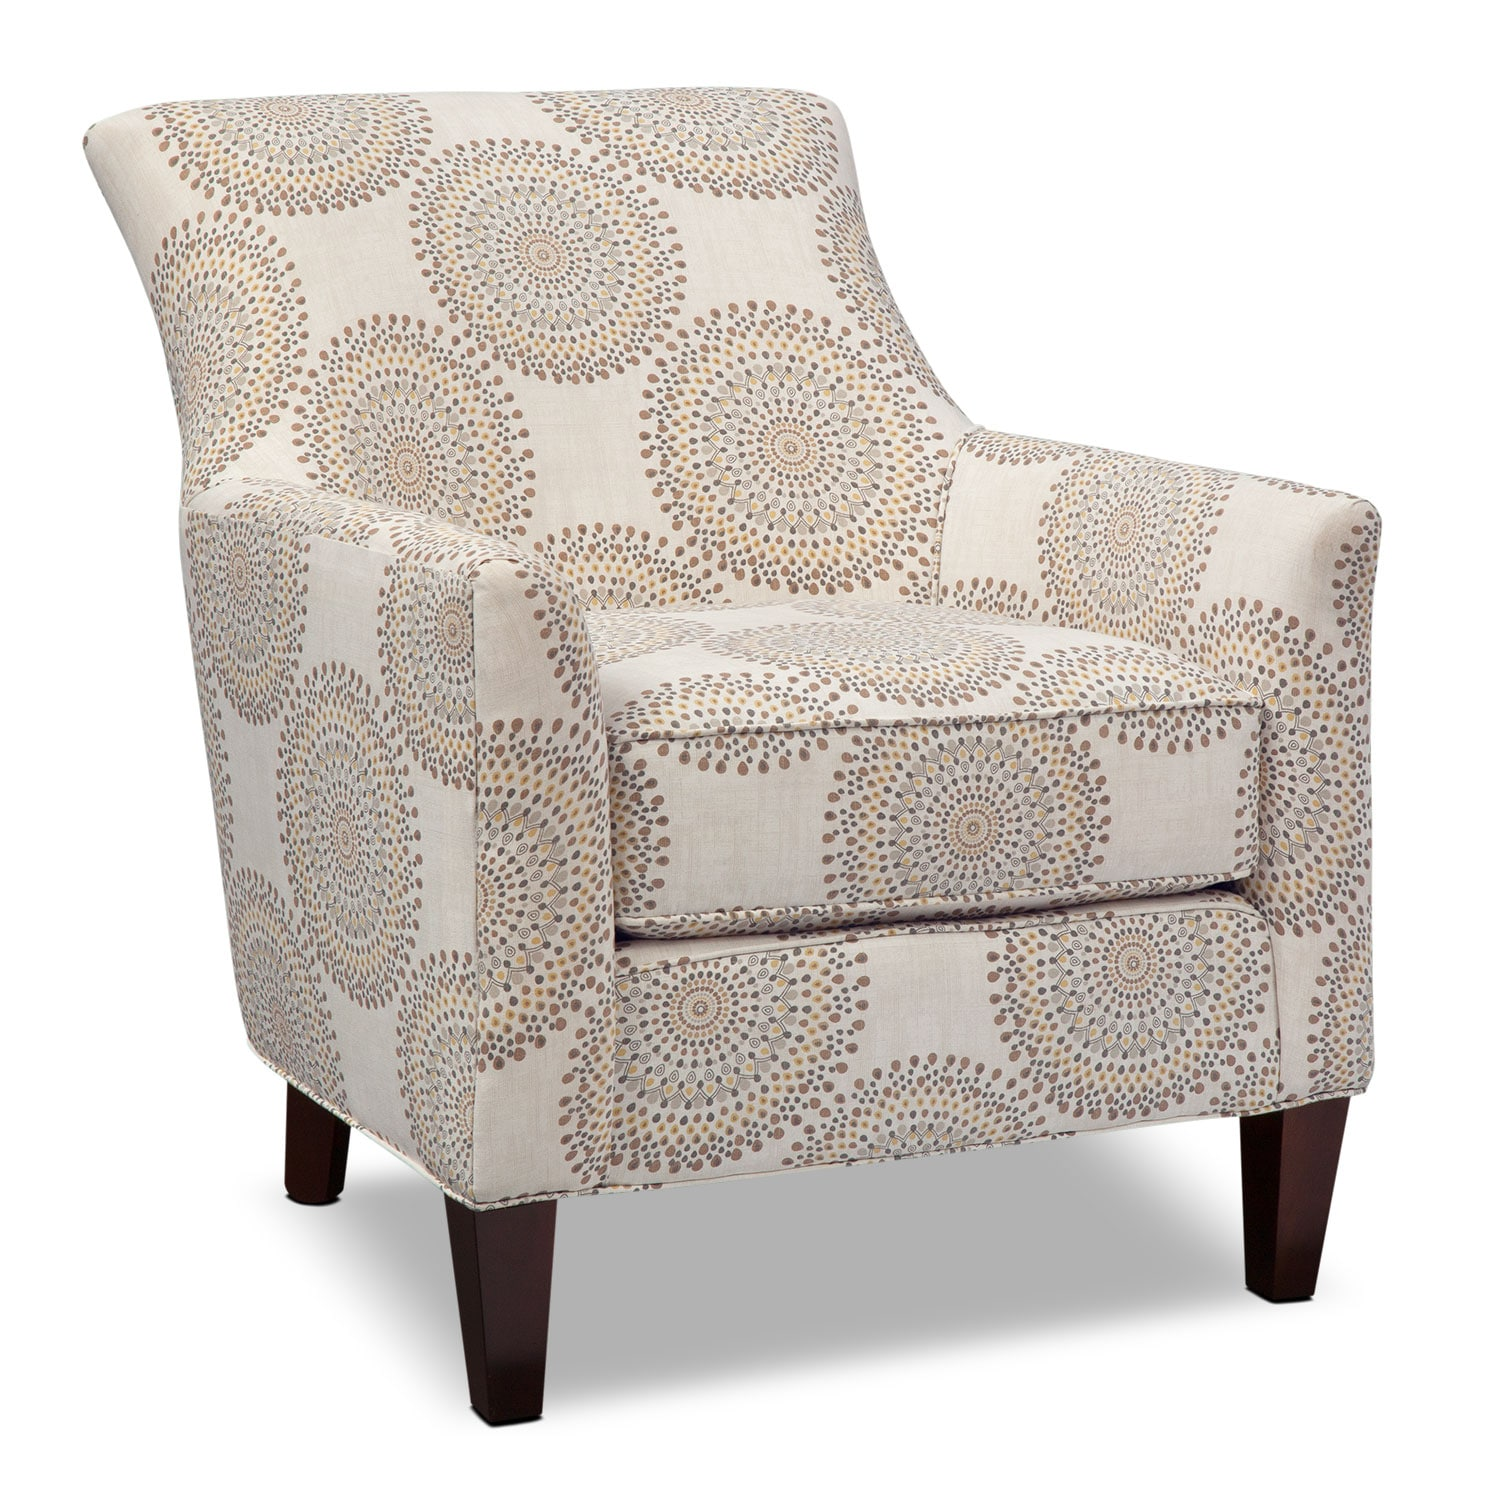 Accent Chair For Bedroom: Rachel Carousel Accent Chair - Sand